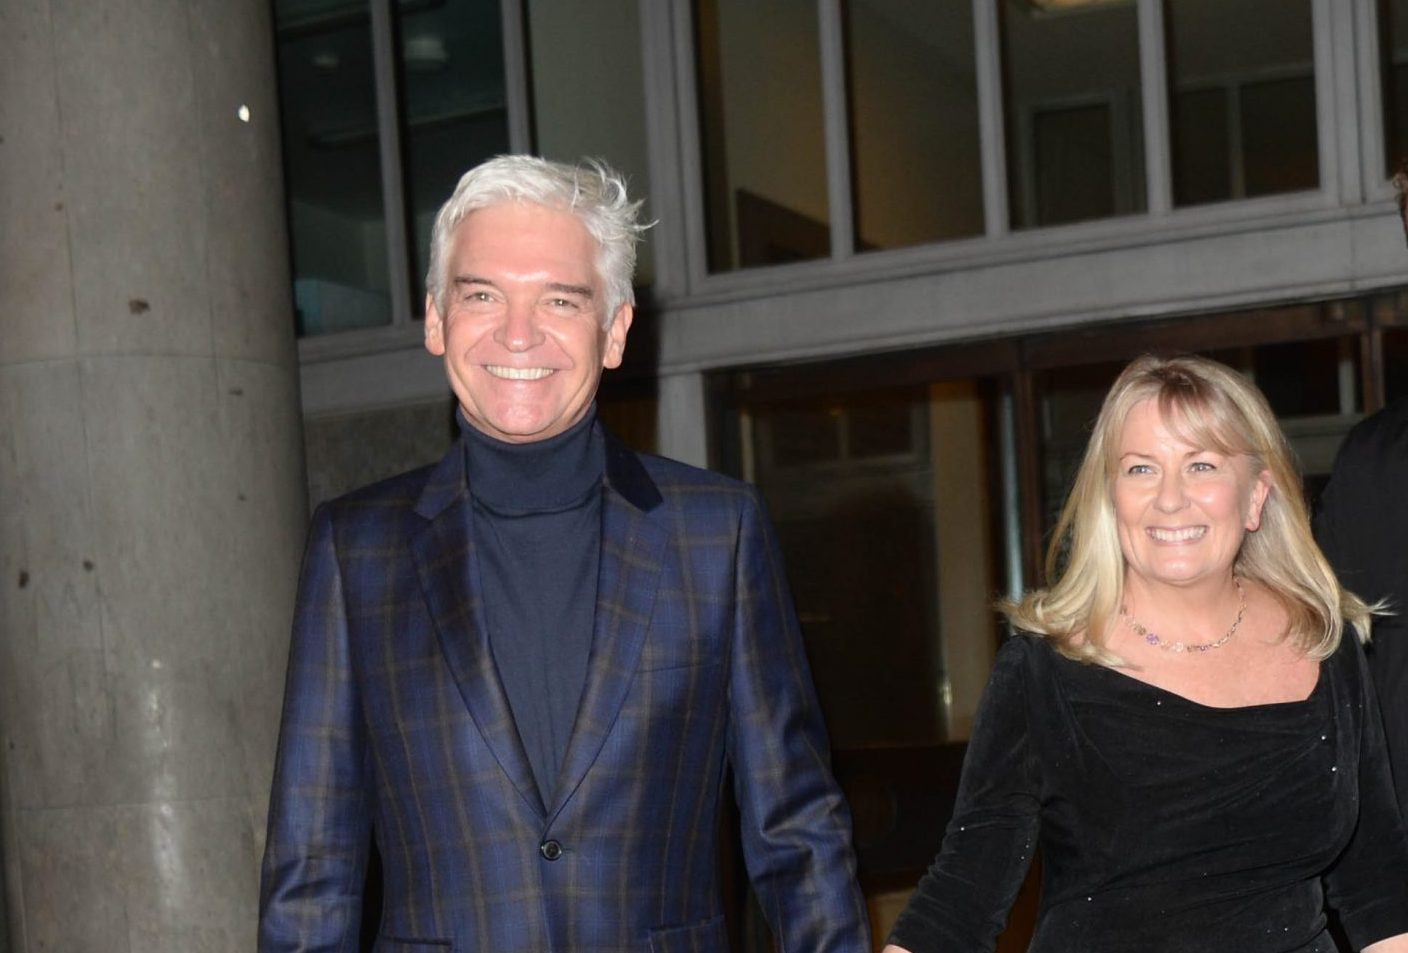 Phillip Schofield's wife Stephanie Lowe breaks her silence days after he reveals he is gay